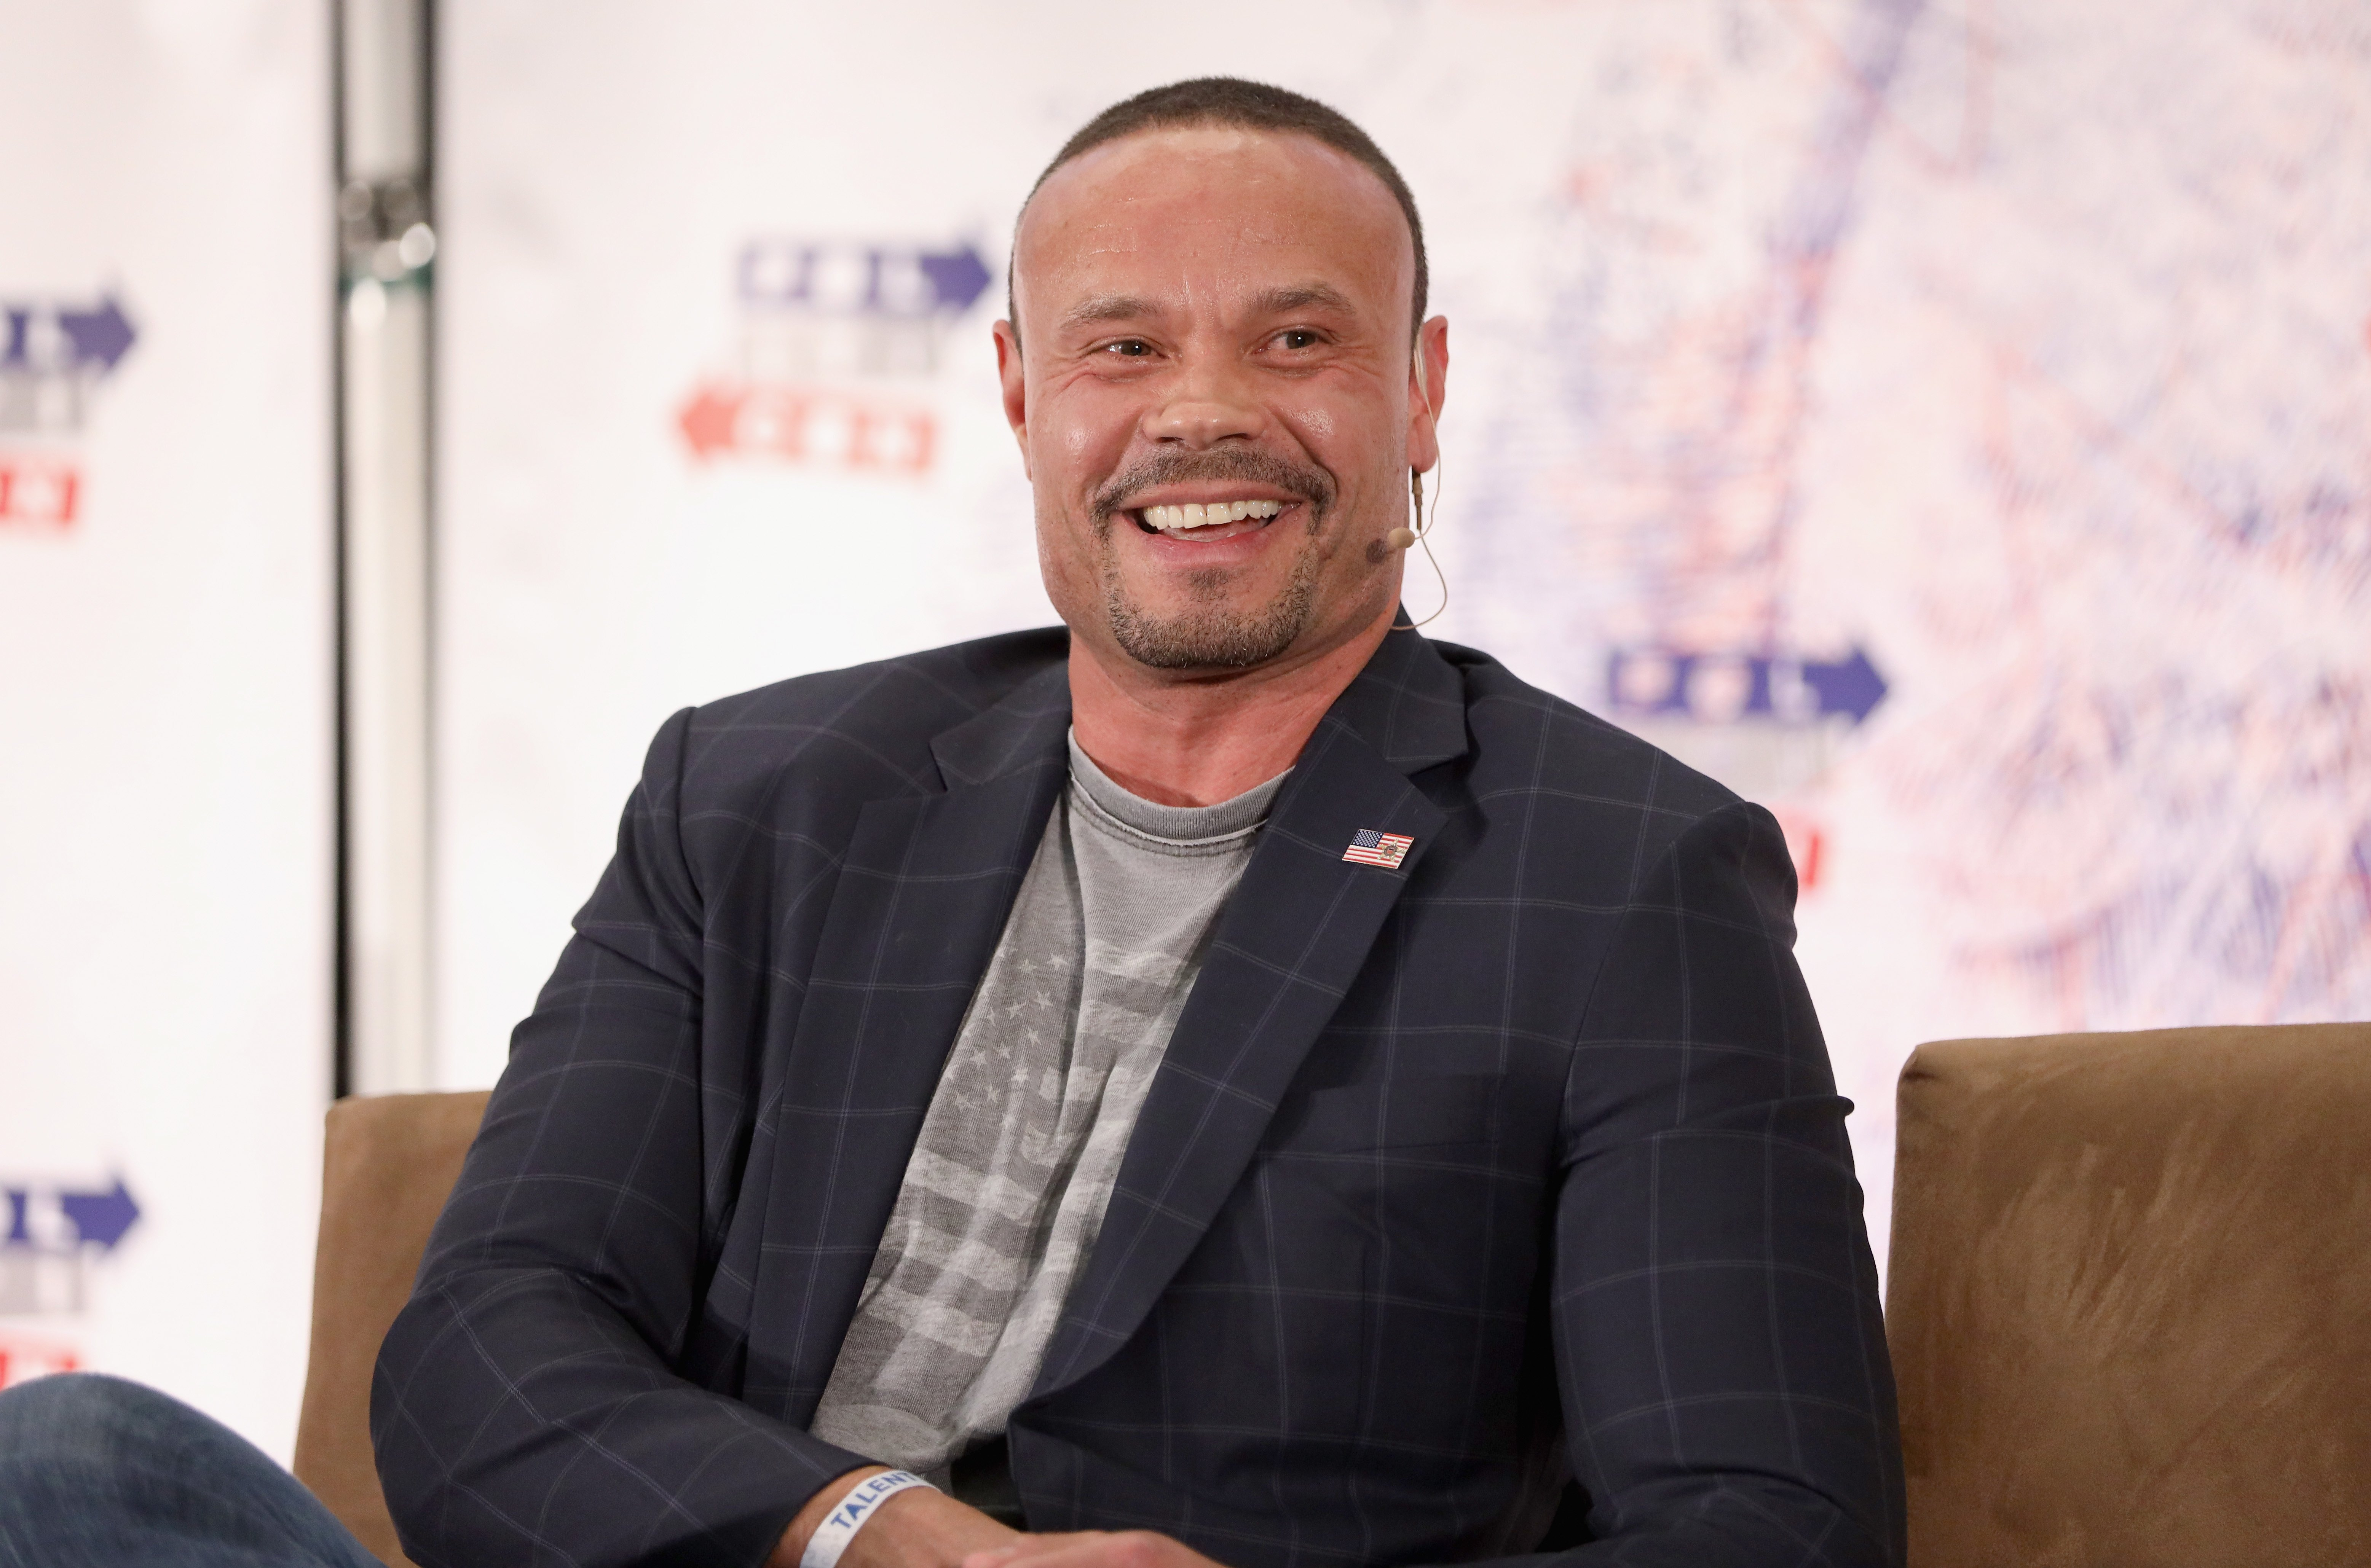 Dan Bongino speaks onstage during Politicon 2018 at Los Angeles Convention Center on October 20, 2018 in Los Angeles, California. (Rich Polk/Getty Images for Politicon)